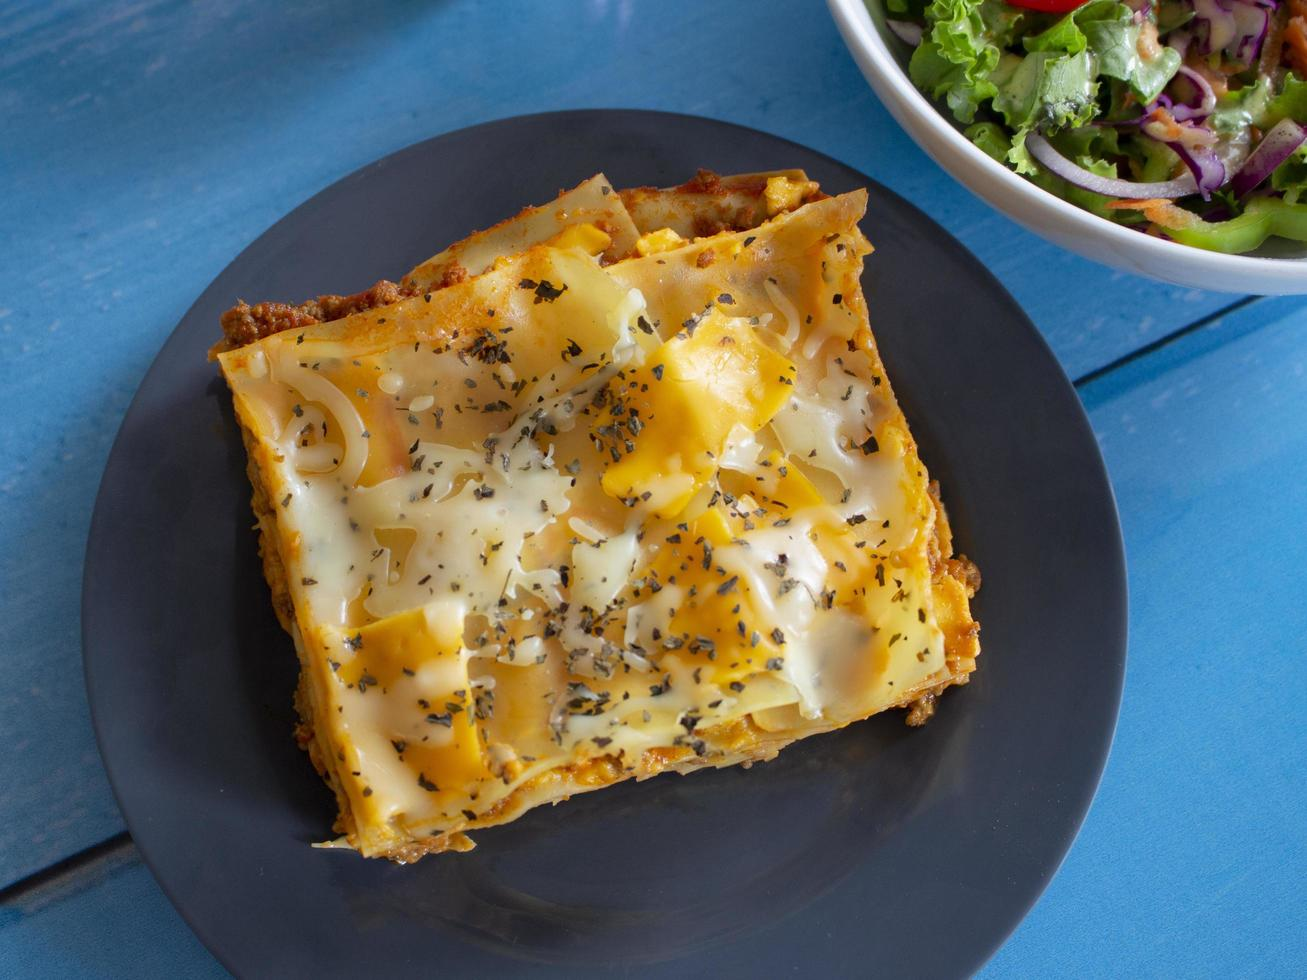 Homemade lasagna with a side salad photo